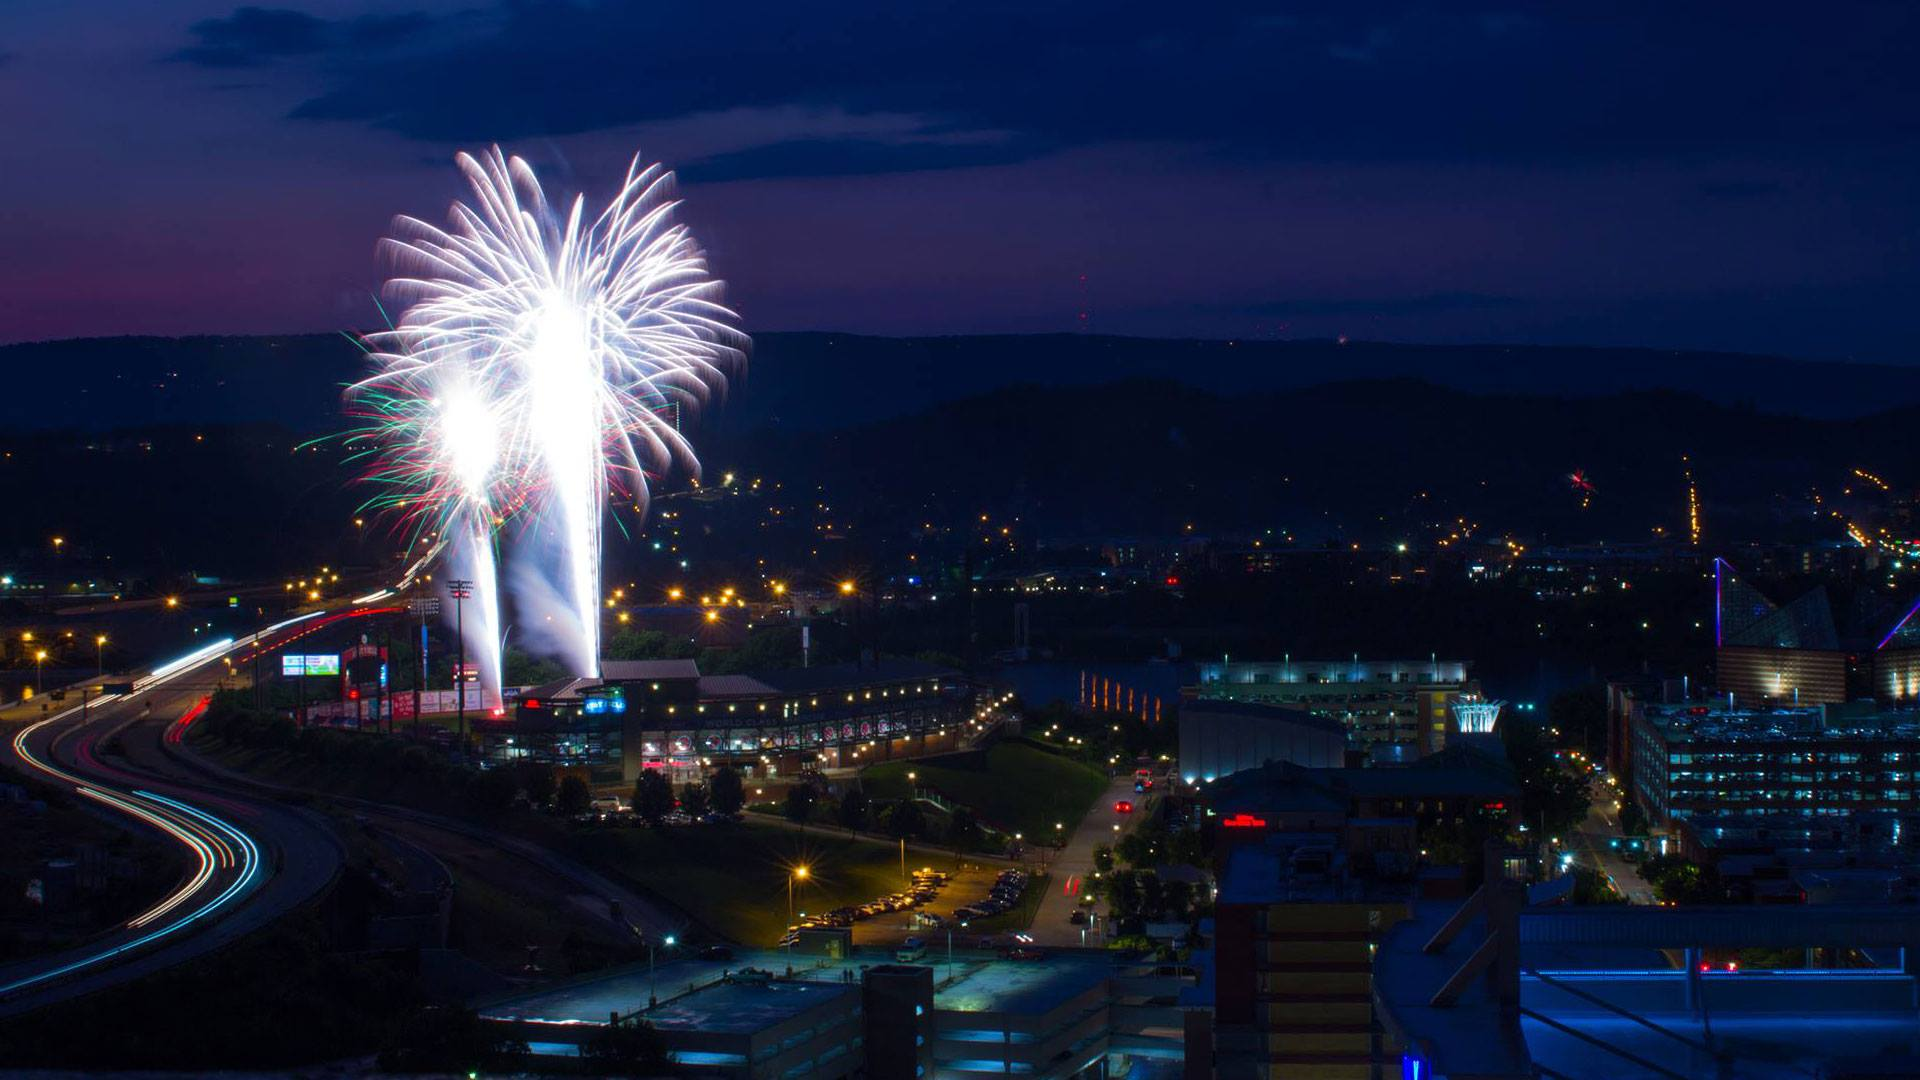 Fireworks Friday! Lookouts vs. Biscuits  Friday, July 13th, from 7:15 PM - 11 PM @  AT&T Stadium